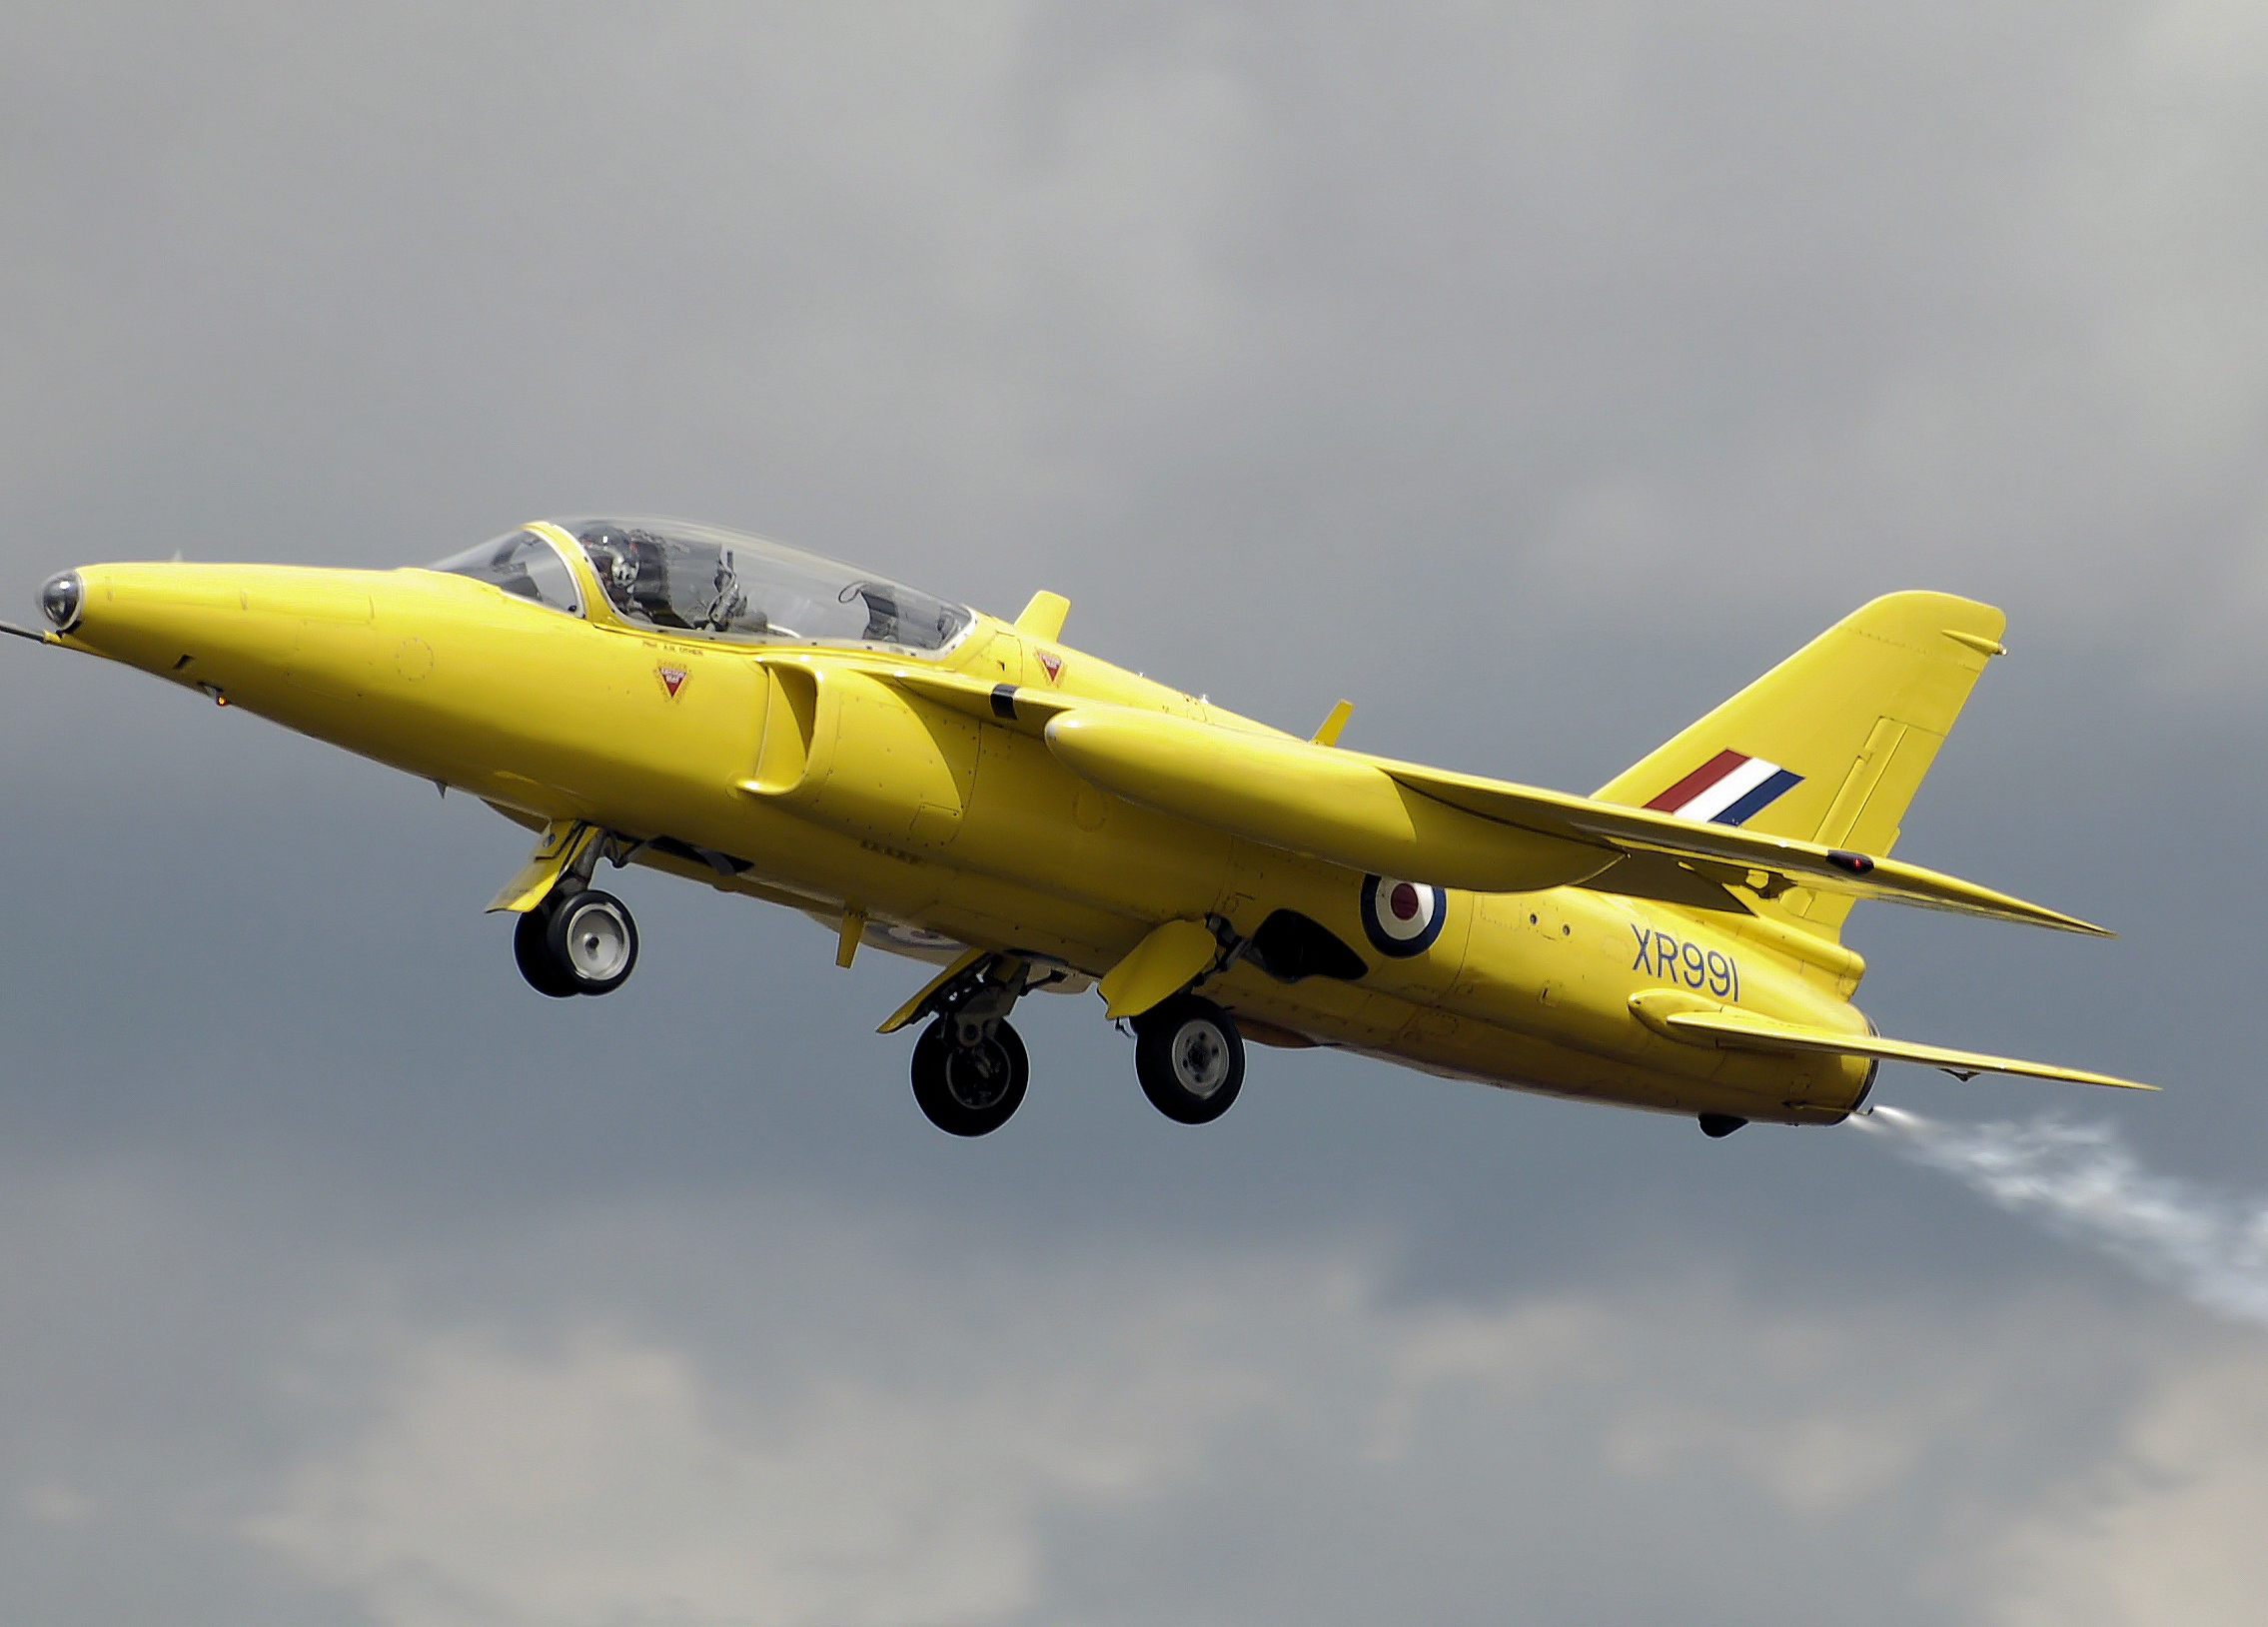 Folland_gnat_xr991_sideview_arp